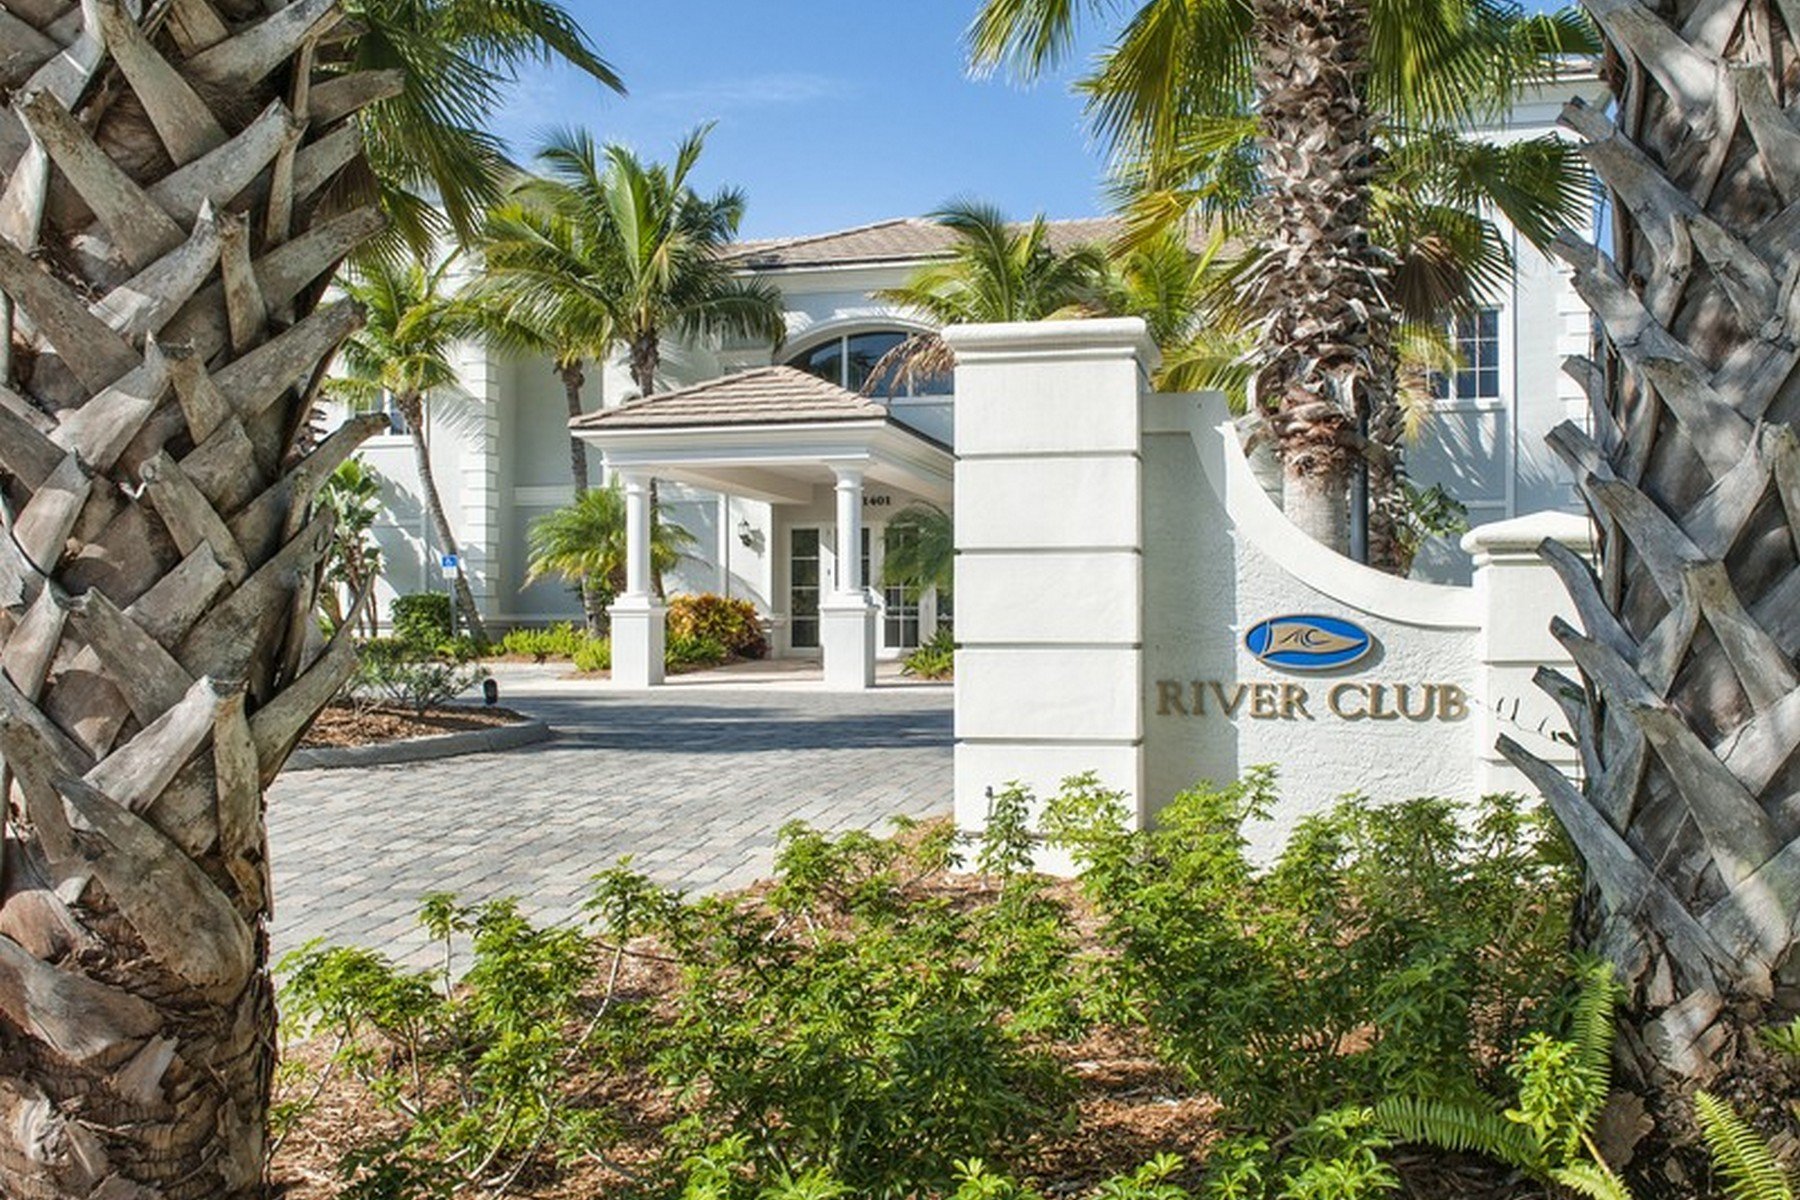 단독 가정 주택 용 매매 에 Sophisticated To Be Built Home in River Club 1413 Old Winter Beach Rd Vero Beach, 플로리다, 32963 미국